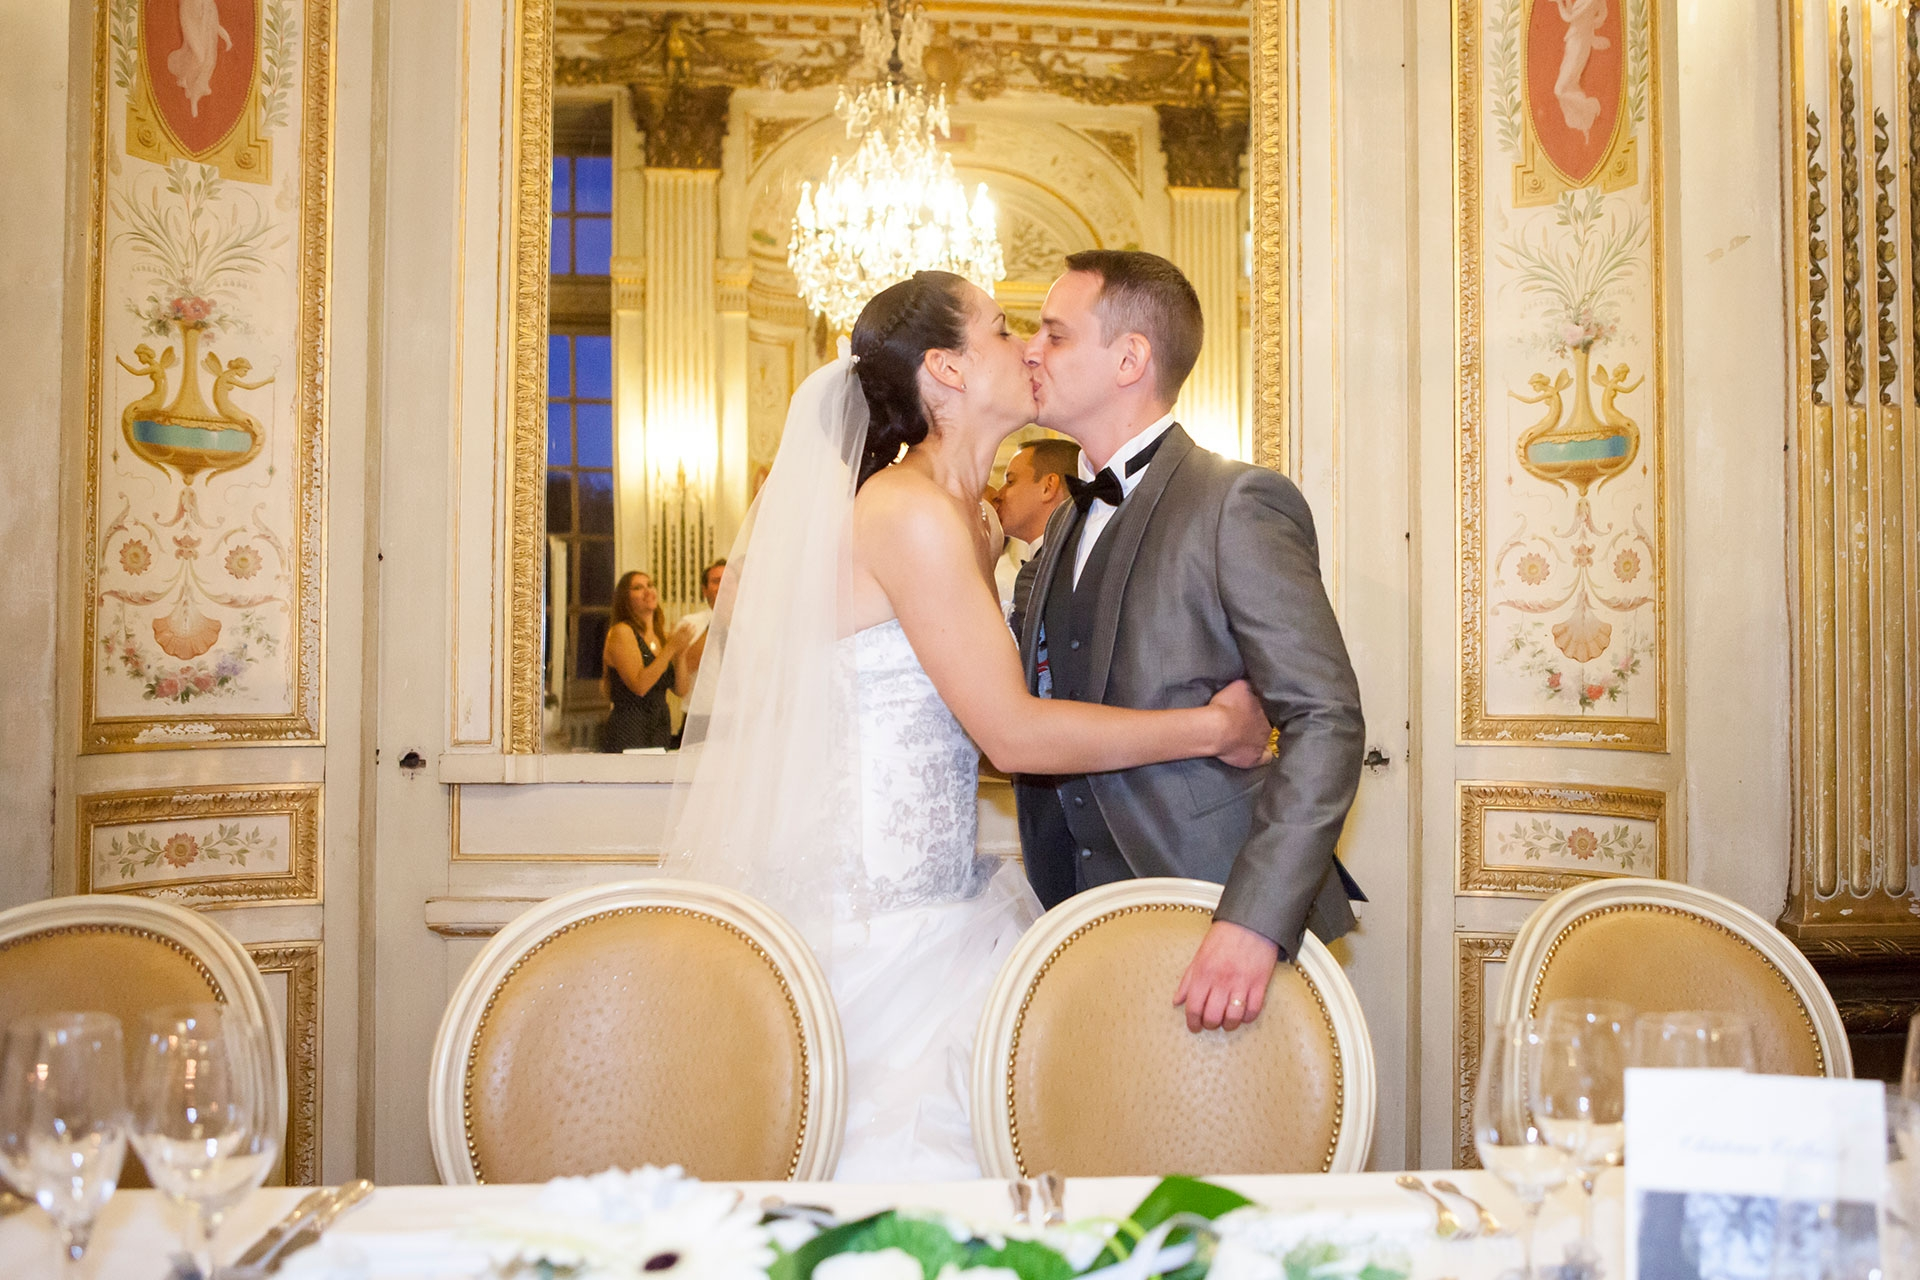 particuliers-mariage-oui-delphineguillaume-62